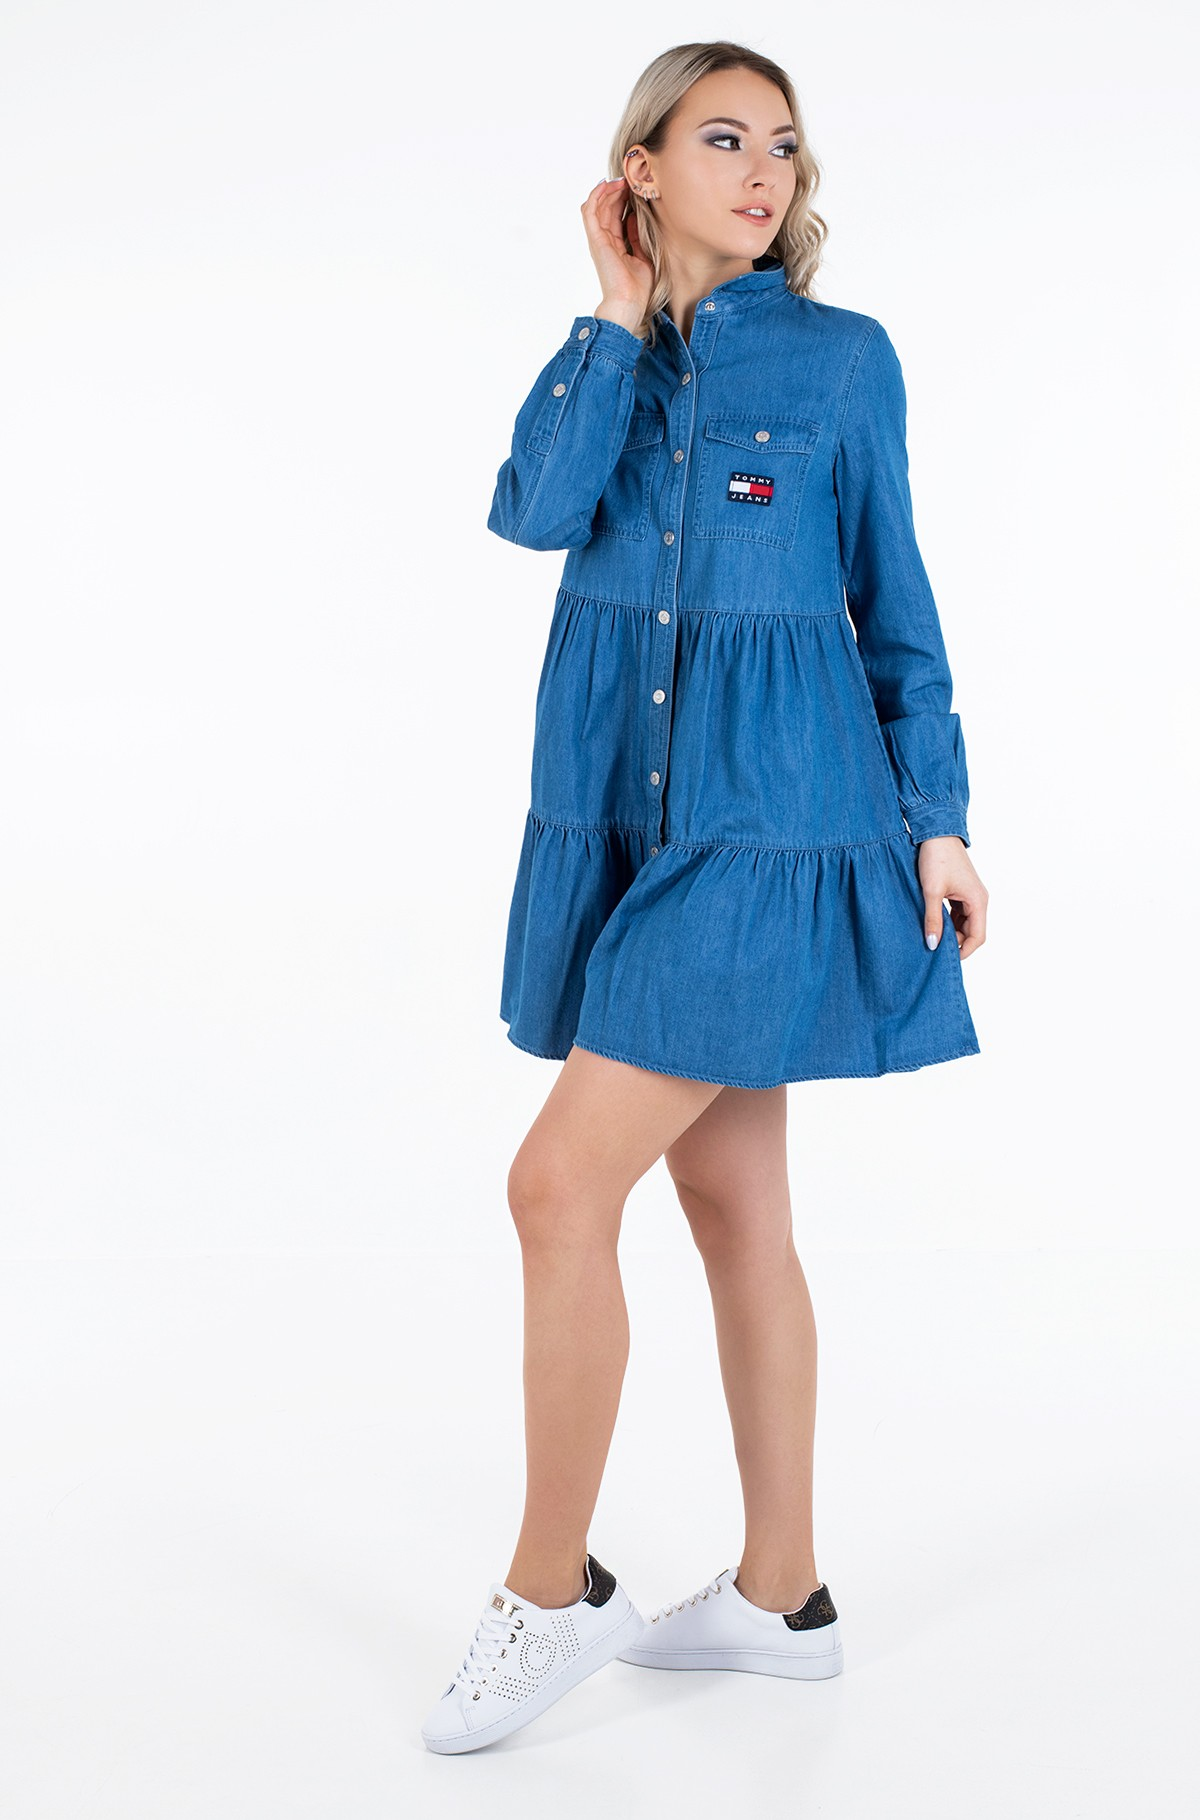 Džinsu kleita TJW CHAMBRAY SHIRT DRESS LS-full-1